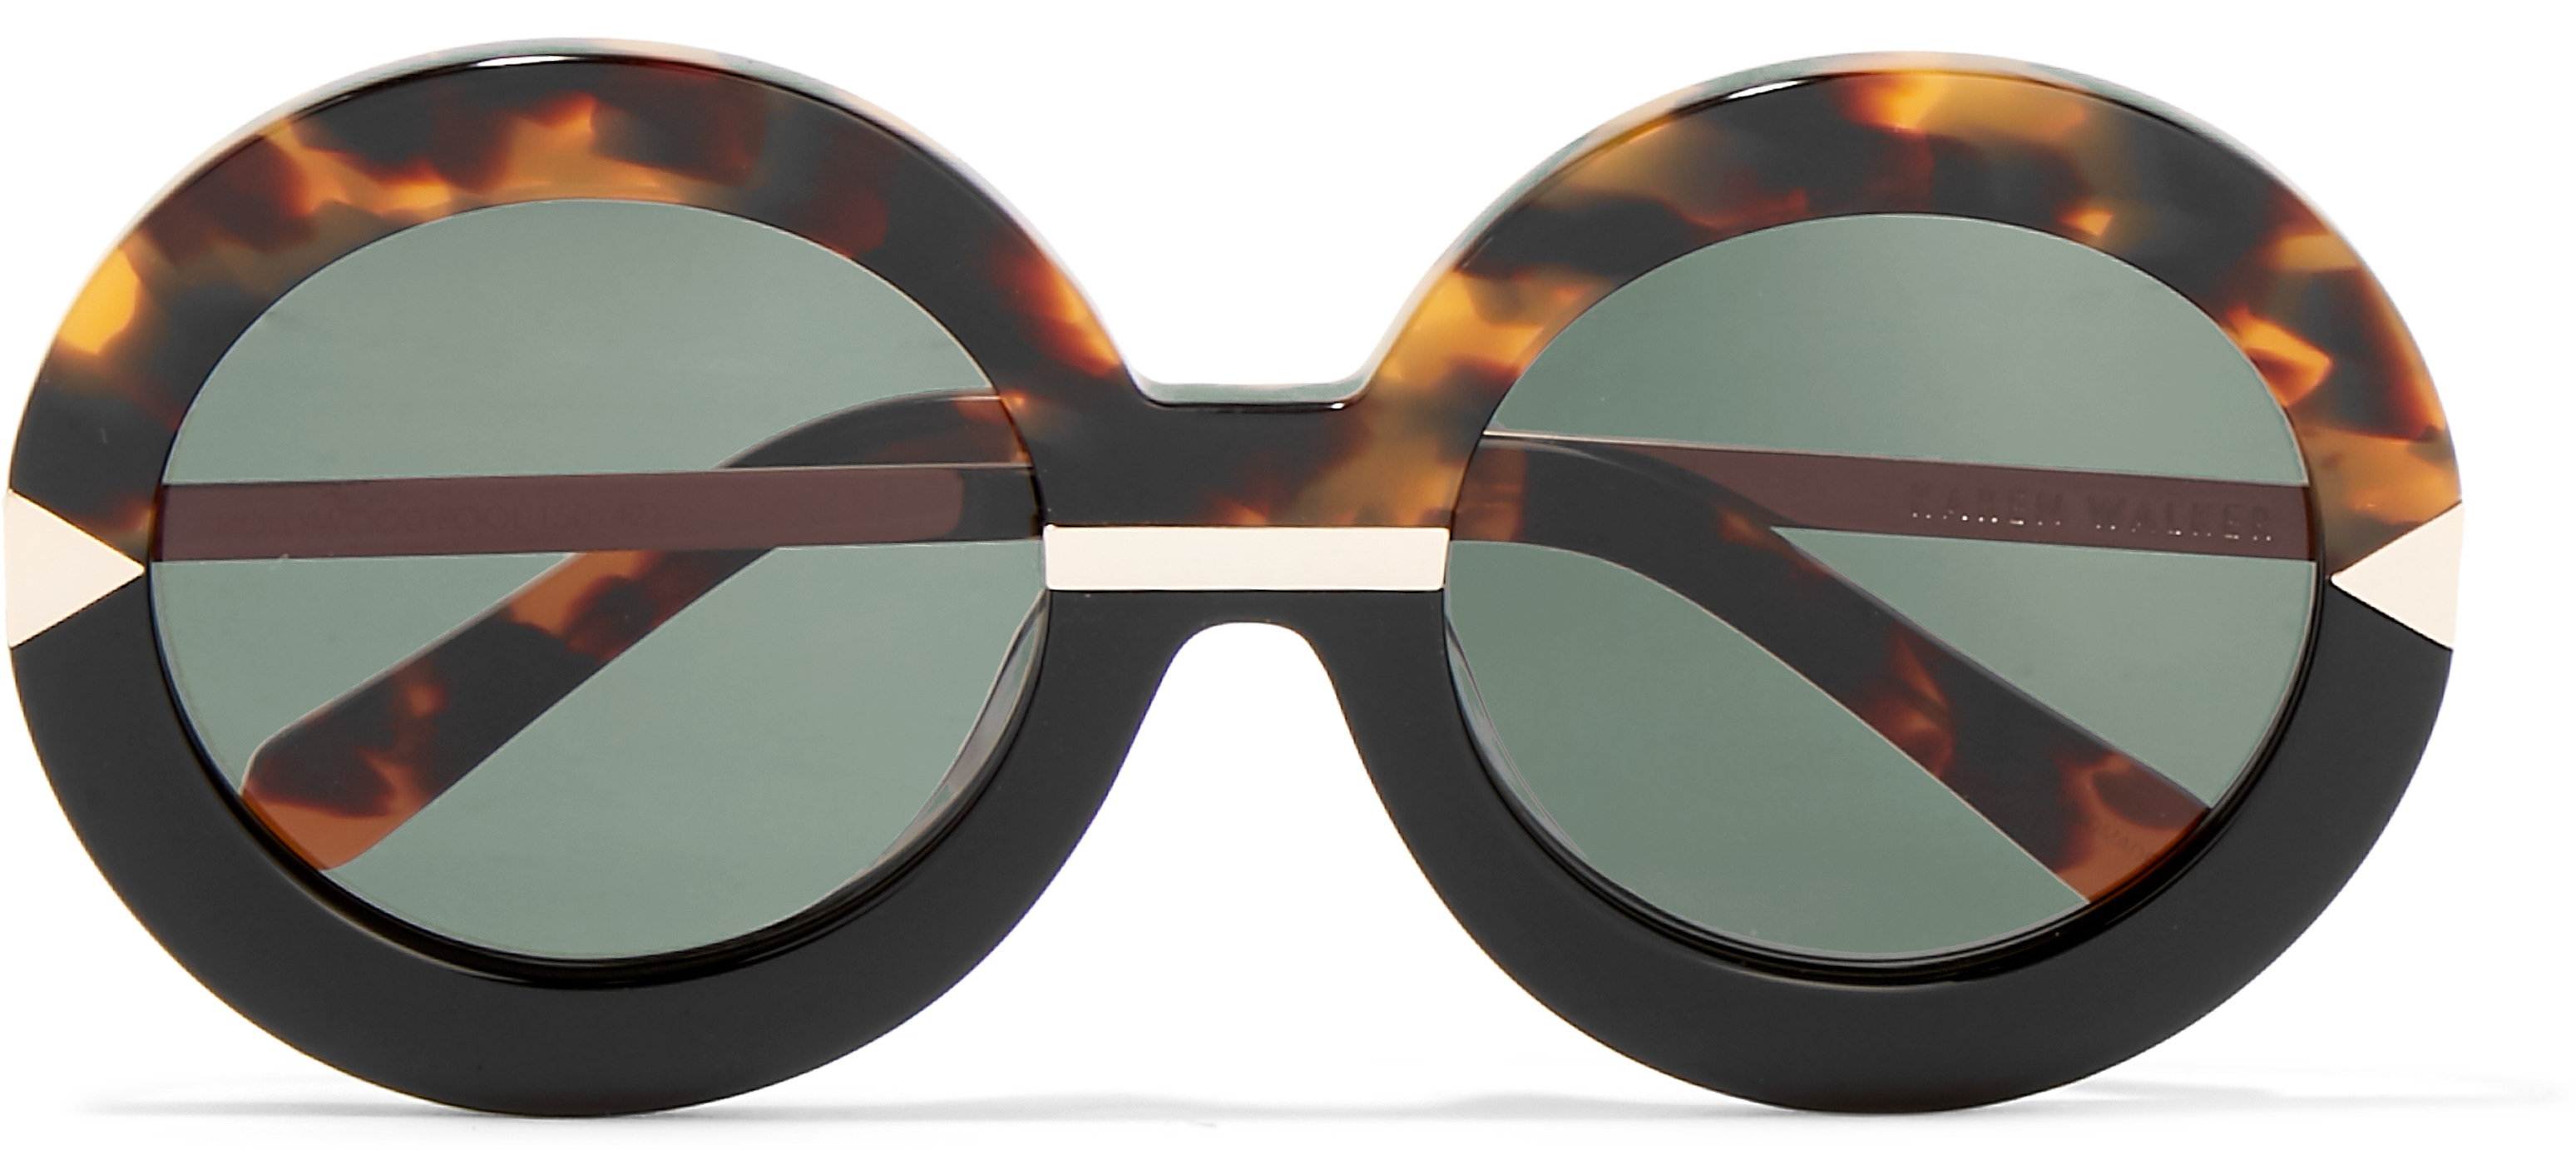 karen-walker-round-sunglasses